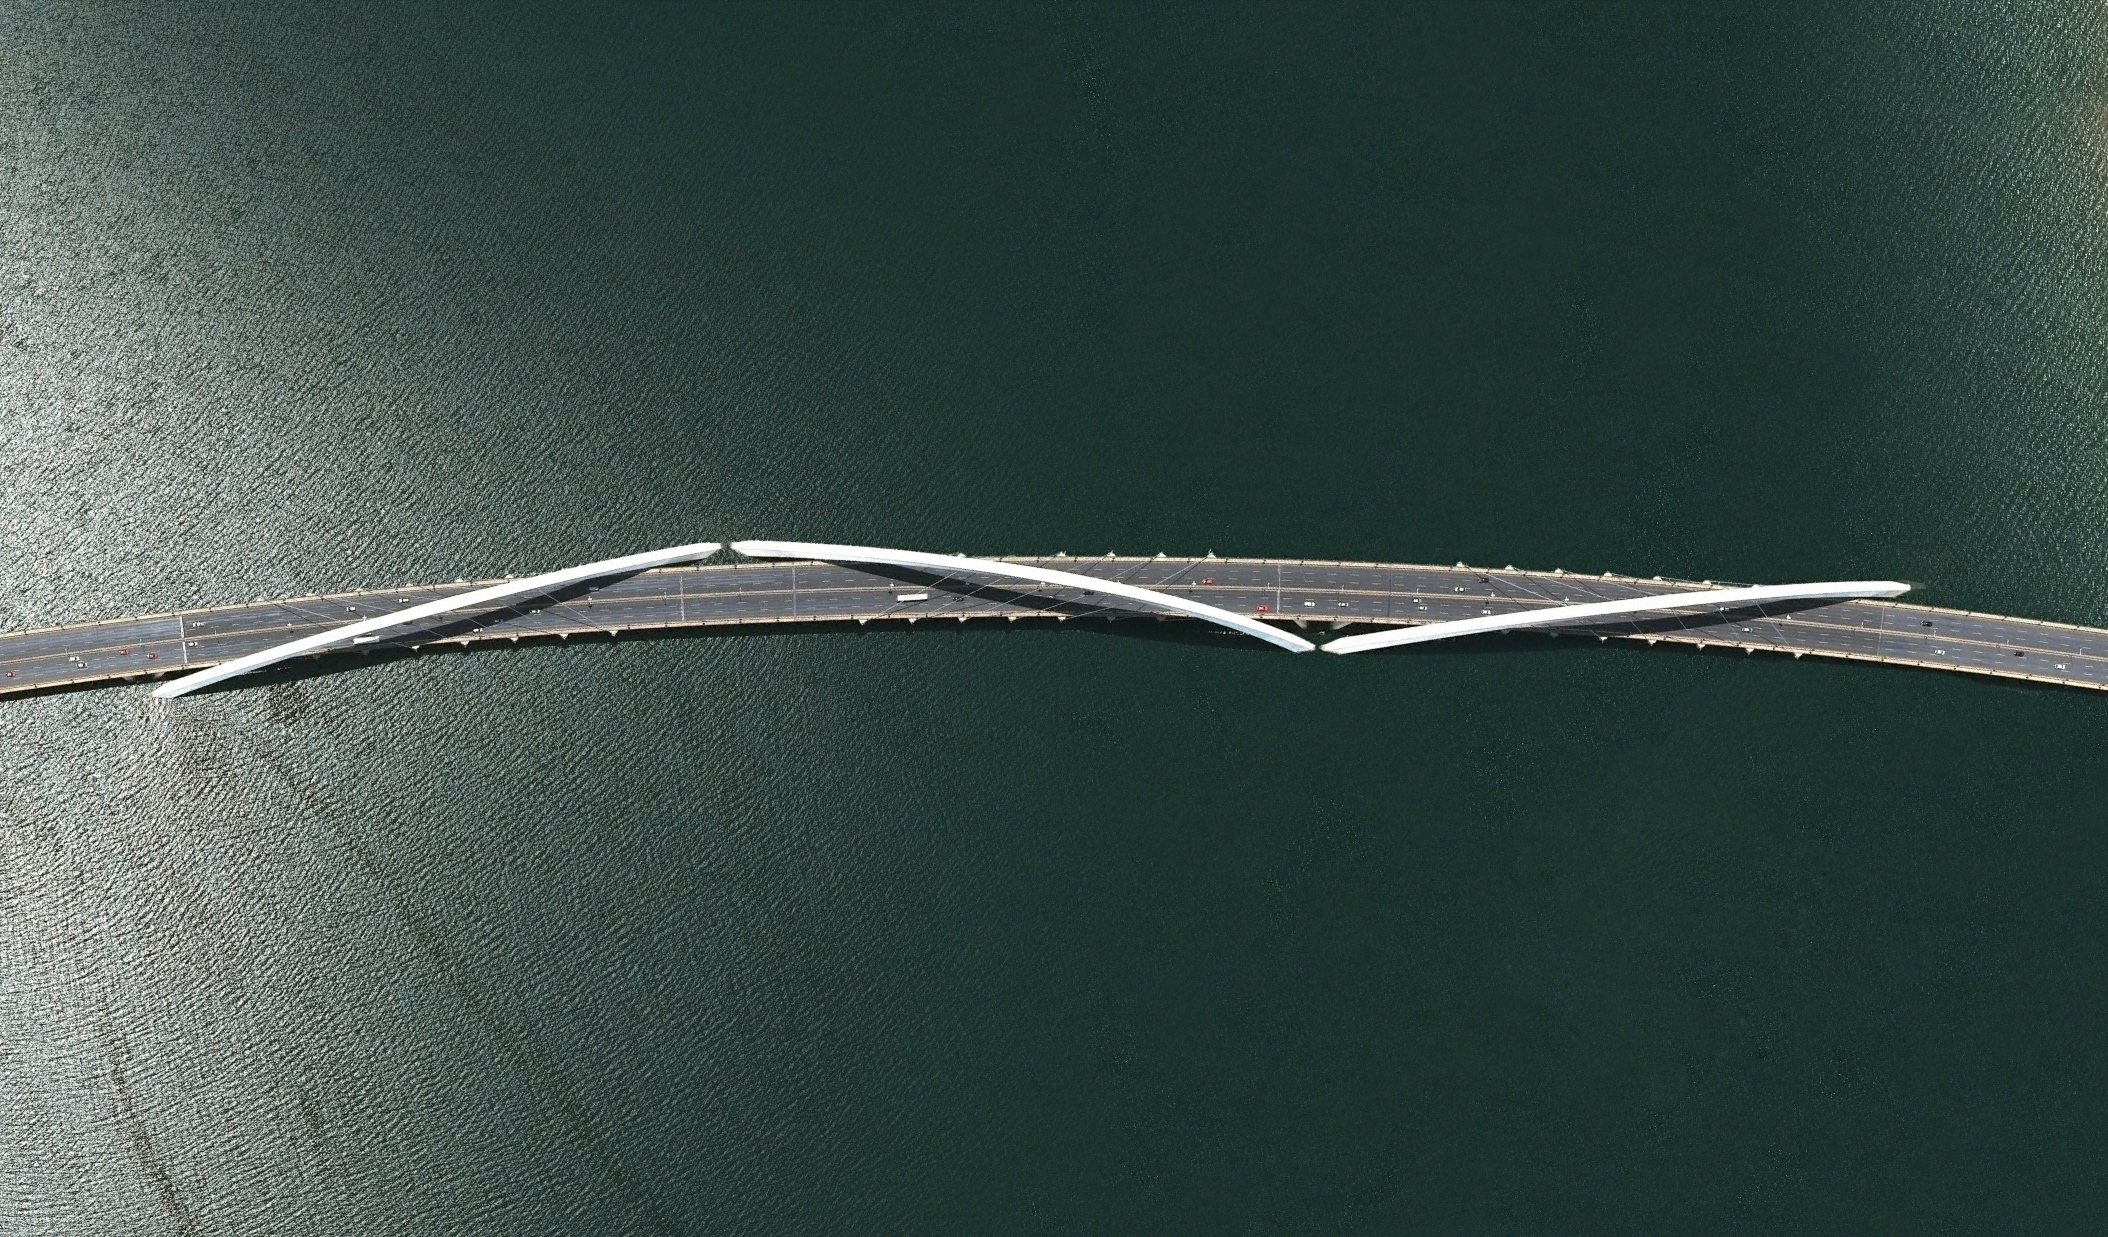 5/15/2015   Juscelino Kubitschek Bridge   Brasilia, Brazil  15°49′25″S 47°49′46″W     The Juscelino Kubitschek Bridge is a steel and concrete structure that crosses Lake Paranoá in Brasília, Brazil. The main span has four supporting pillars submerged underwater, while the deck weight is supported by three 200-foot-tall (61 m) asymmetrical steel arches that crisscross diagonally over the bridge.